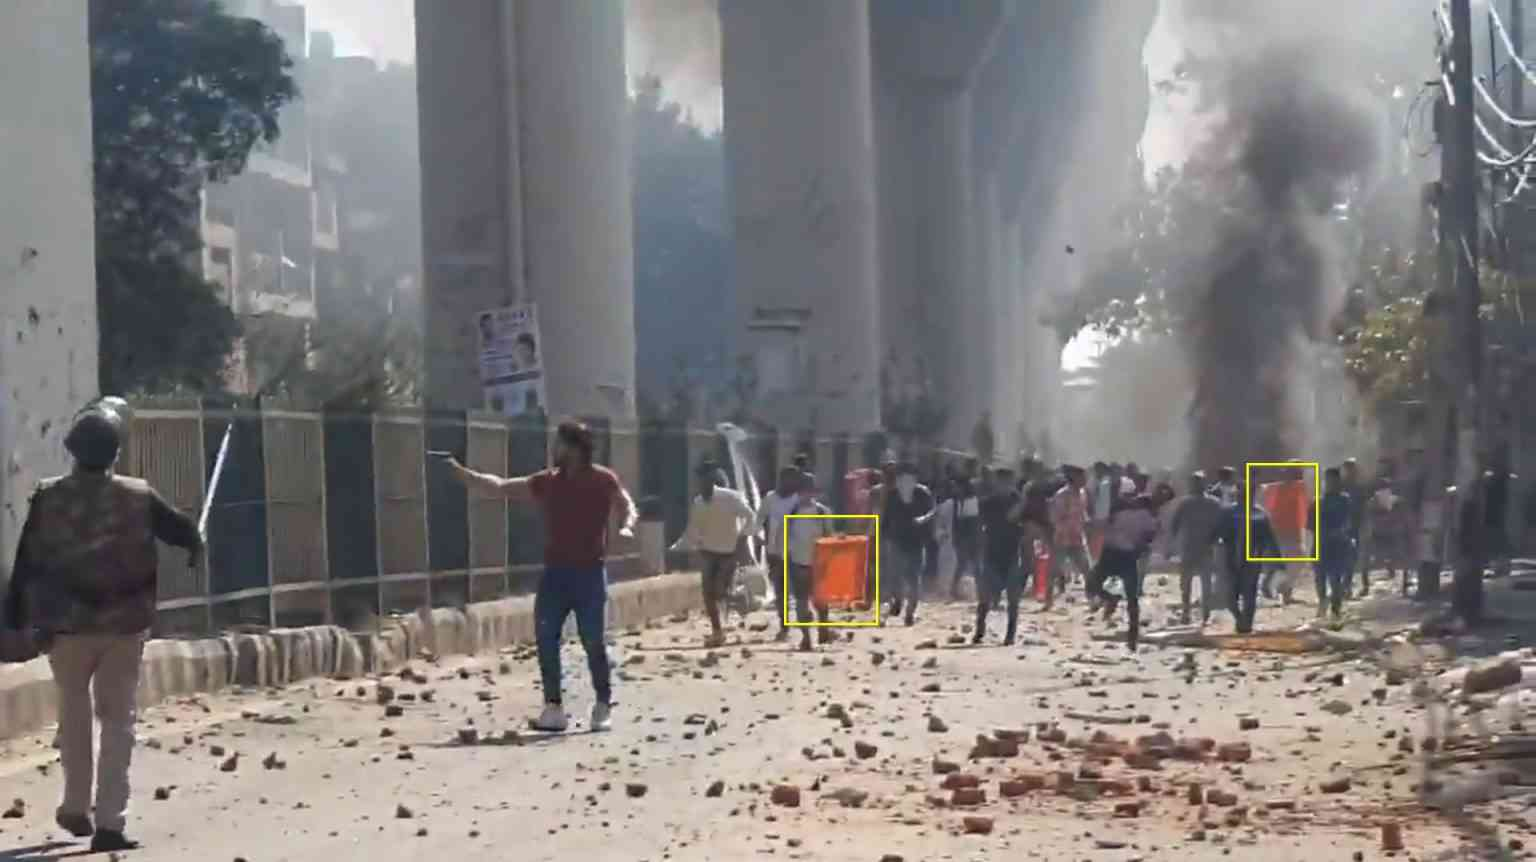 Mumbai put on high-alert after violence in Delhi